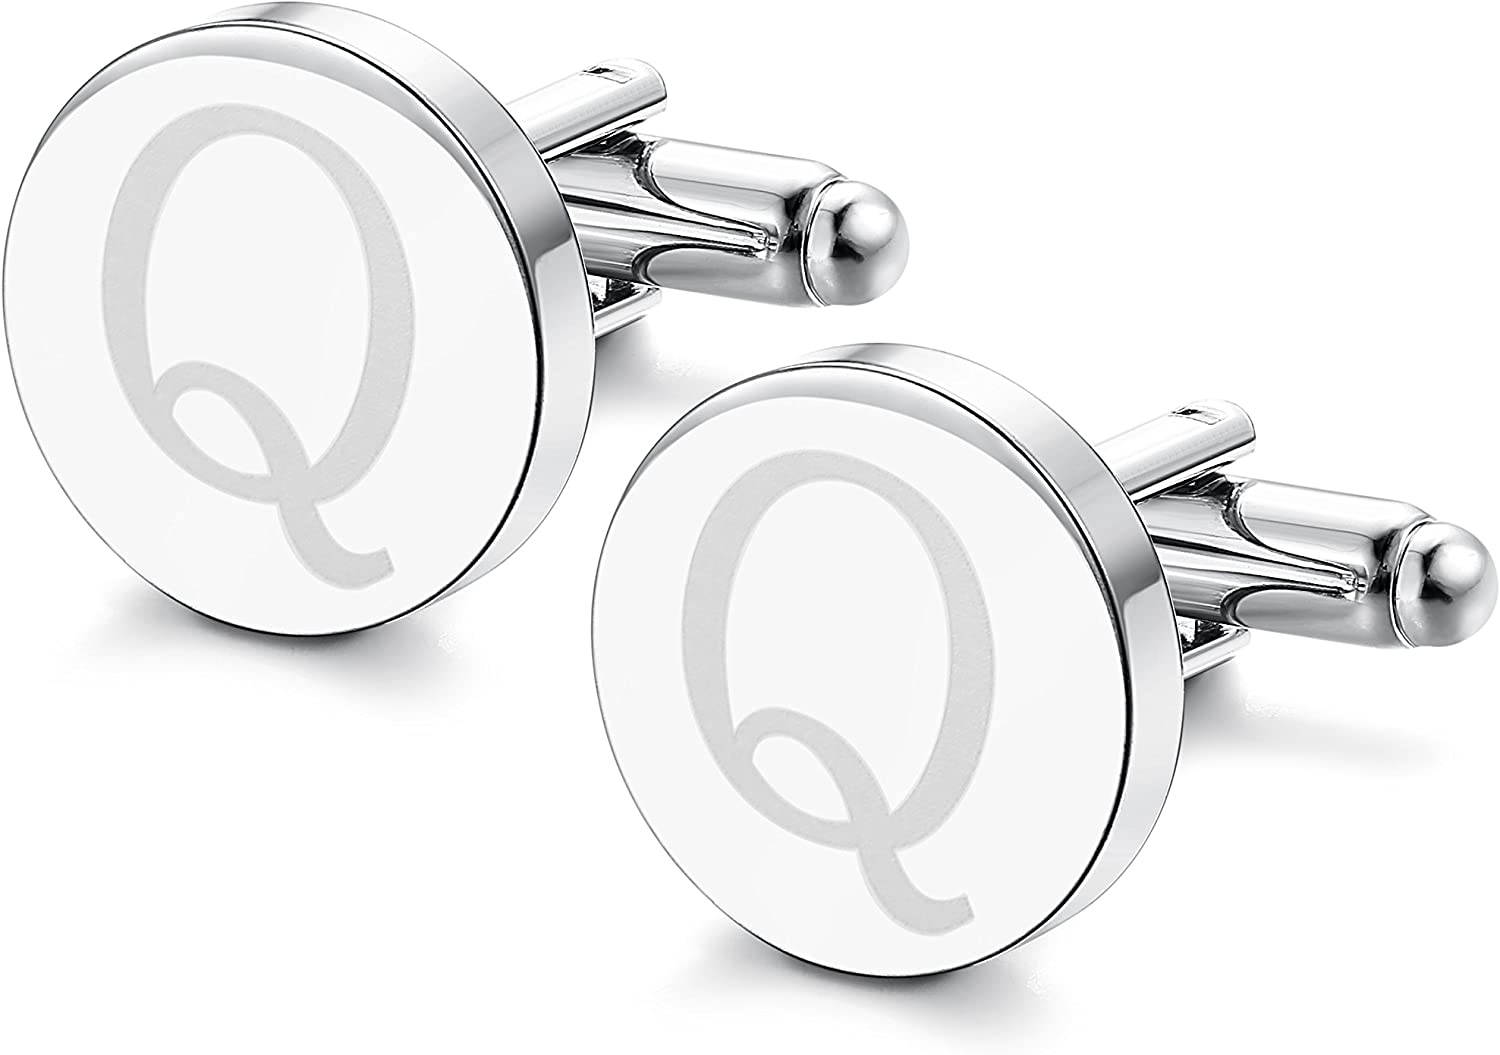 ORAZIO Mens Classic Engraved Initial Cufflinks Alphabet Letter Cufflinks Formal Kit Business Wedding Shirts Q